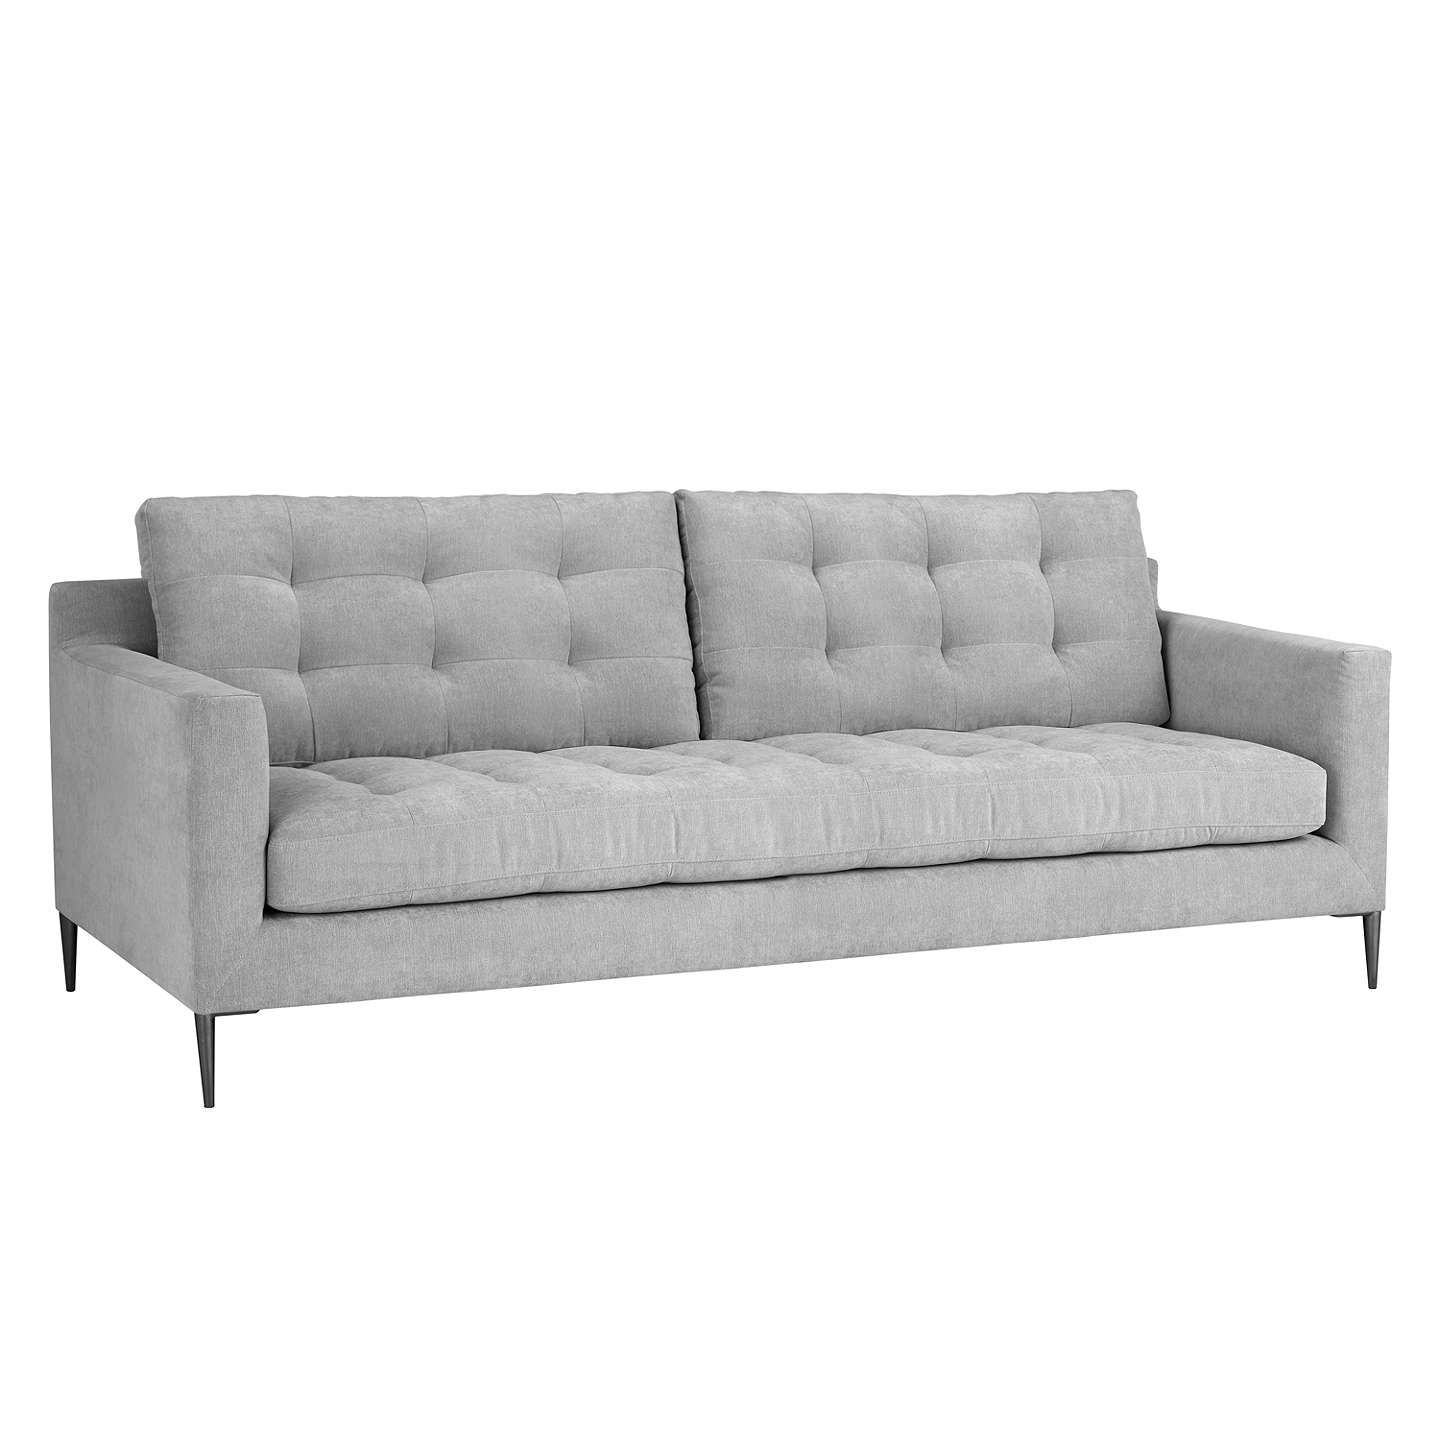 John Lewis & Partners Draper Large 3 Seater Sofa 3